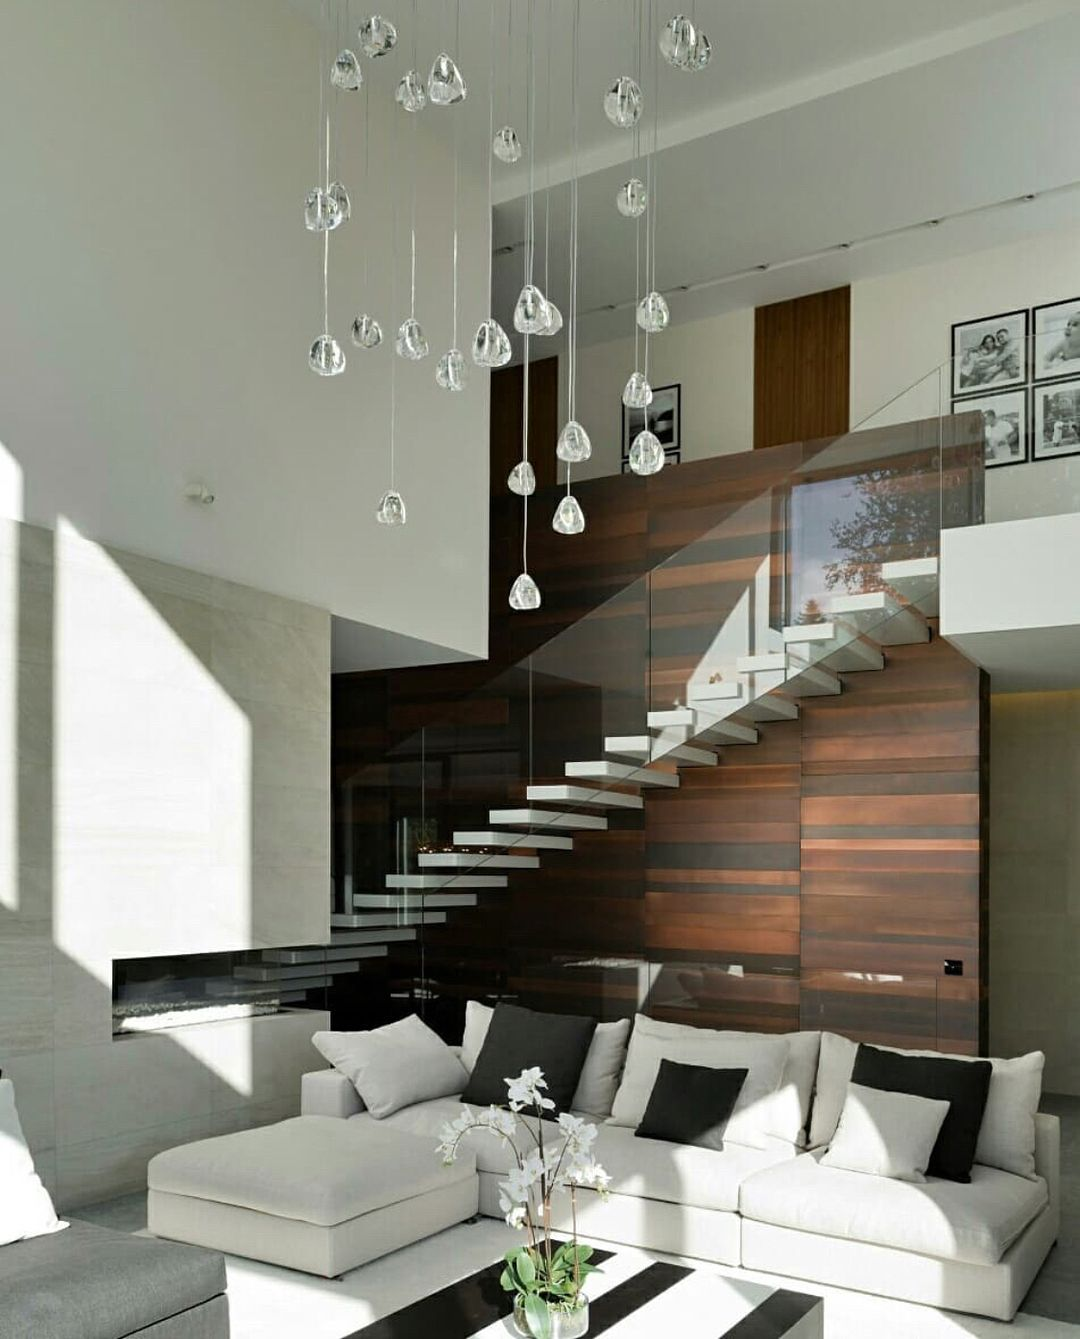 Stunning 15 Beegcom Best Free App For Interior Design Layout Home Decor Sites Chic Home Decor Furniture Design For Hall